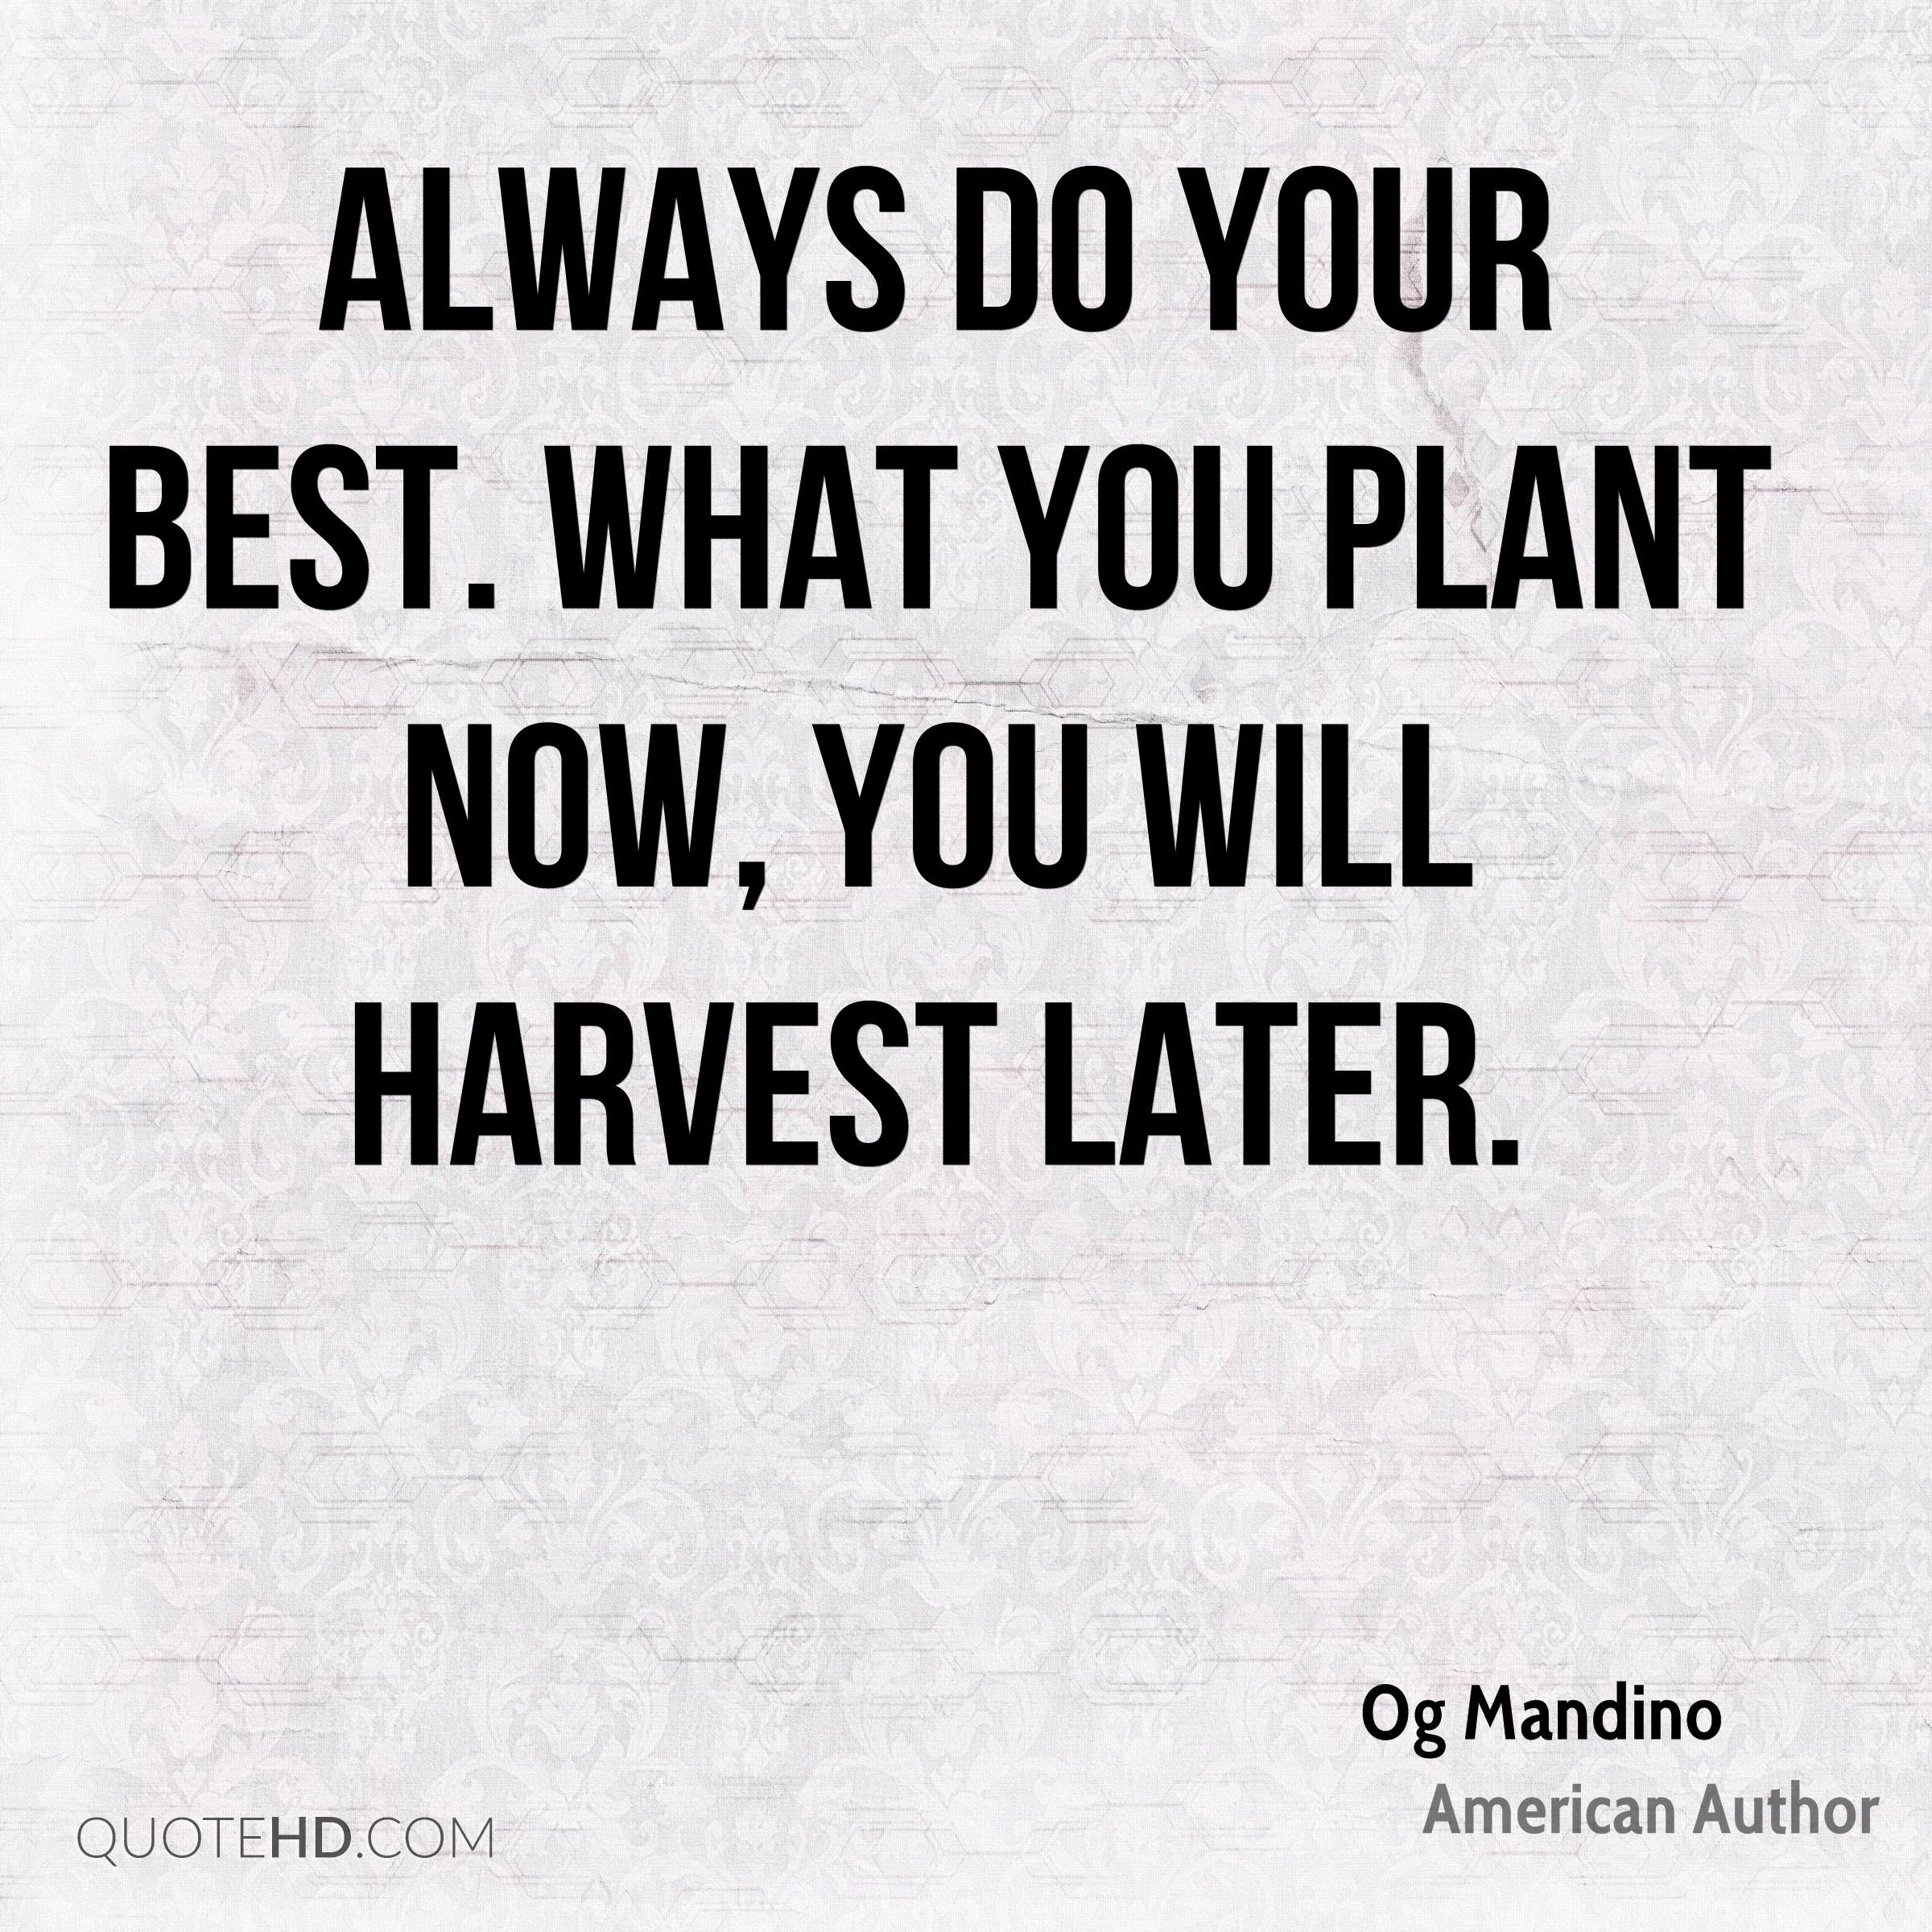 Og Mandino Motivational Quotes Quotehd